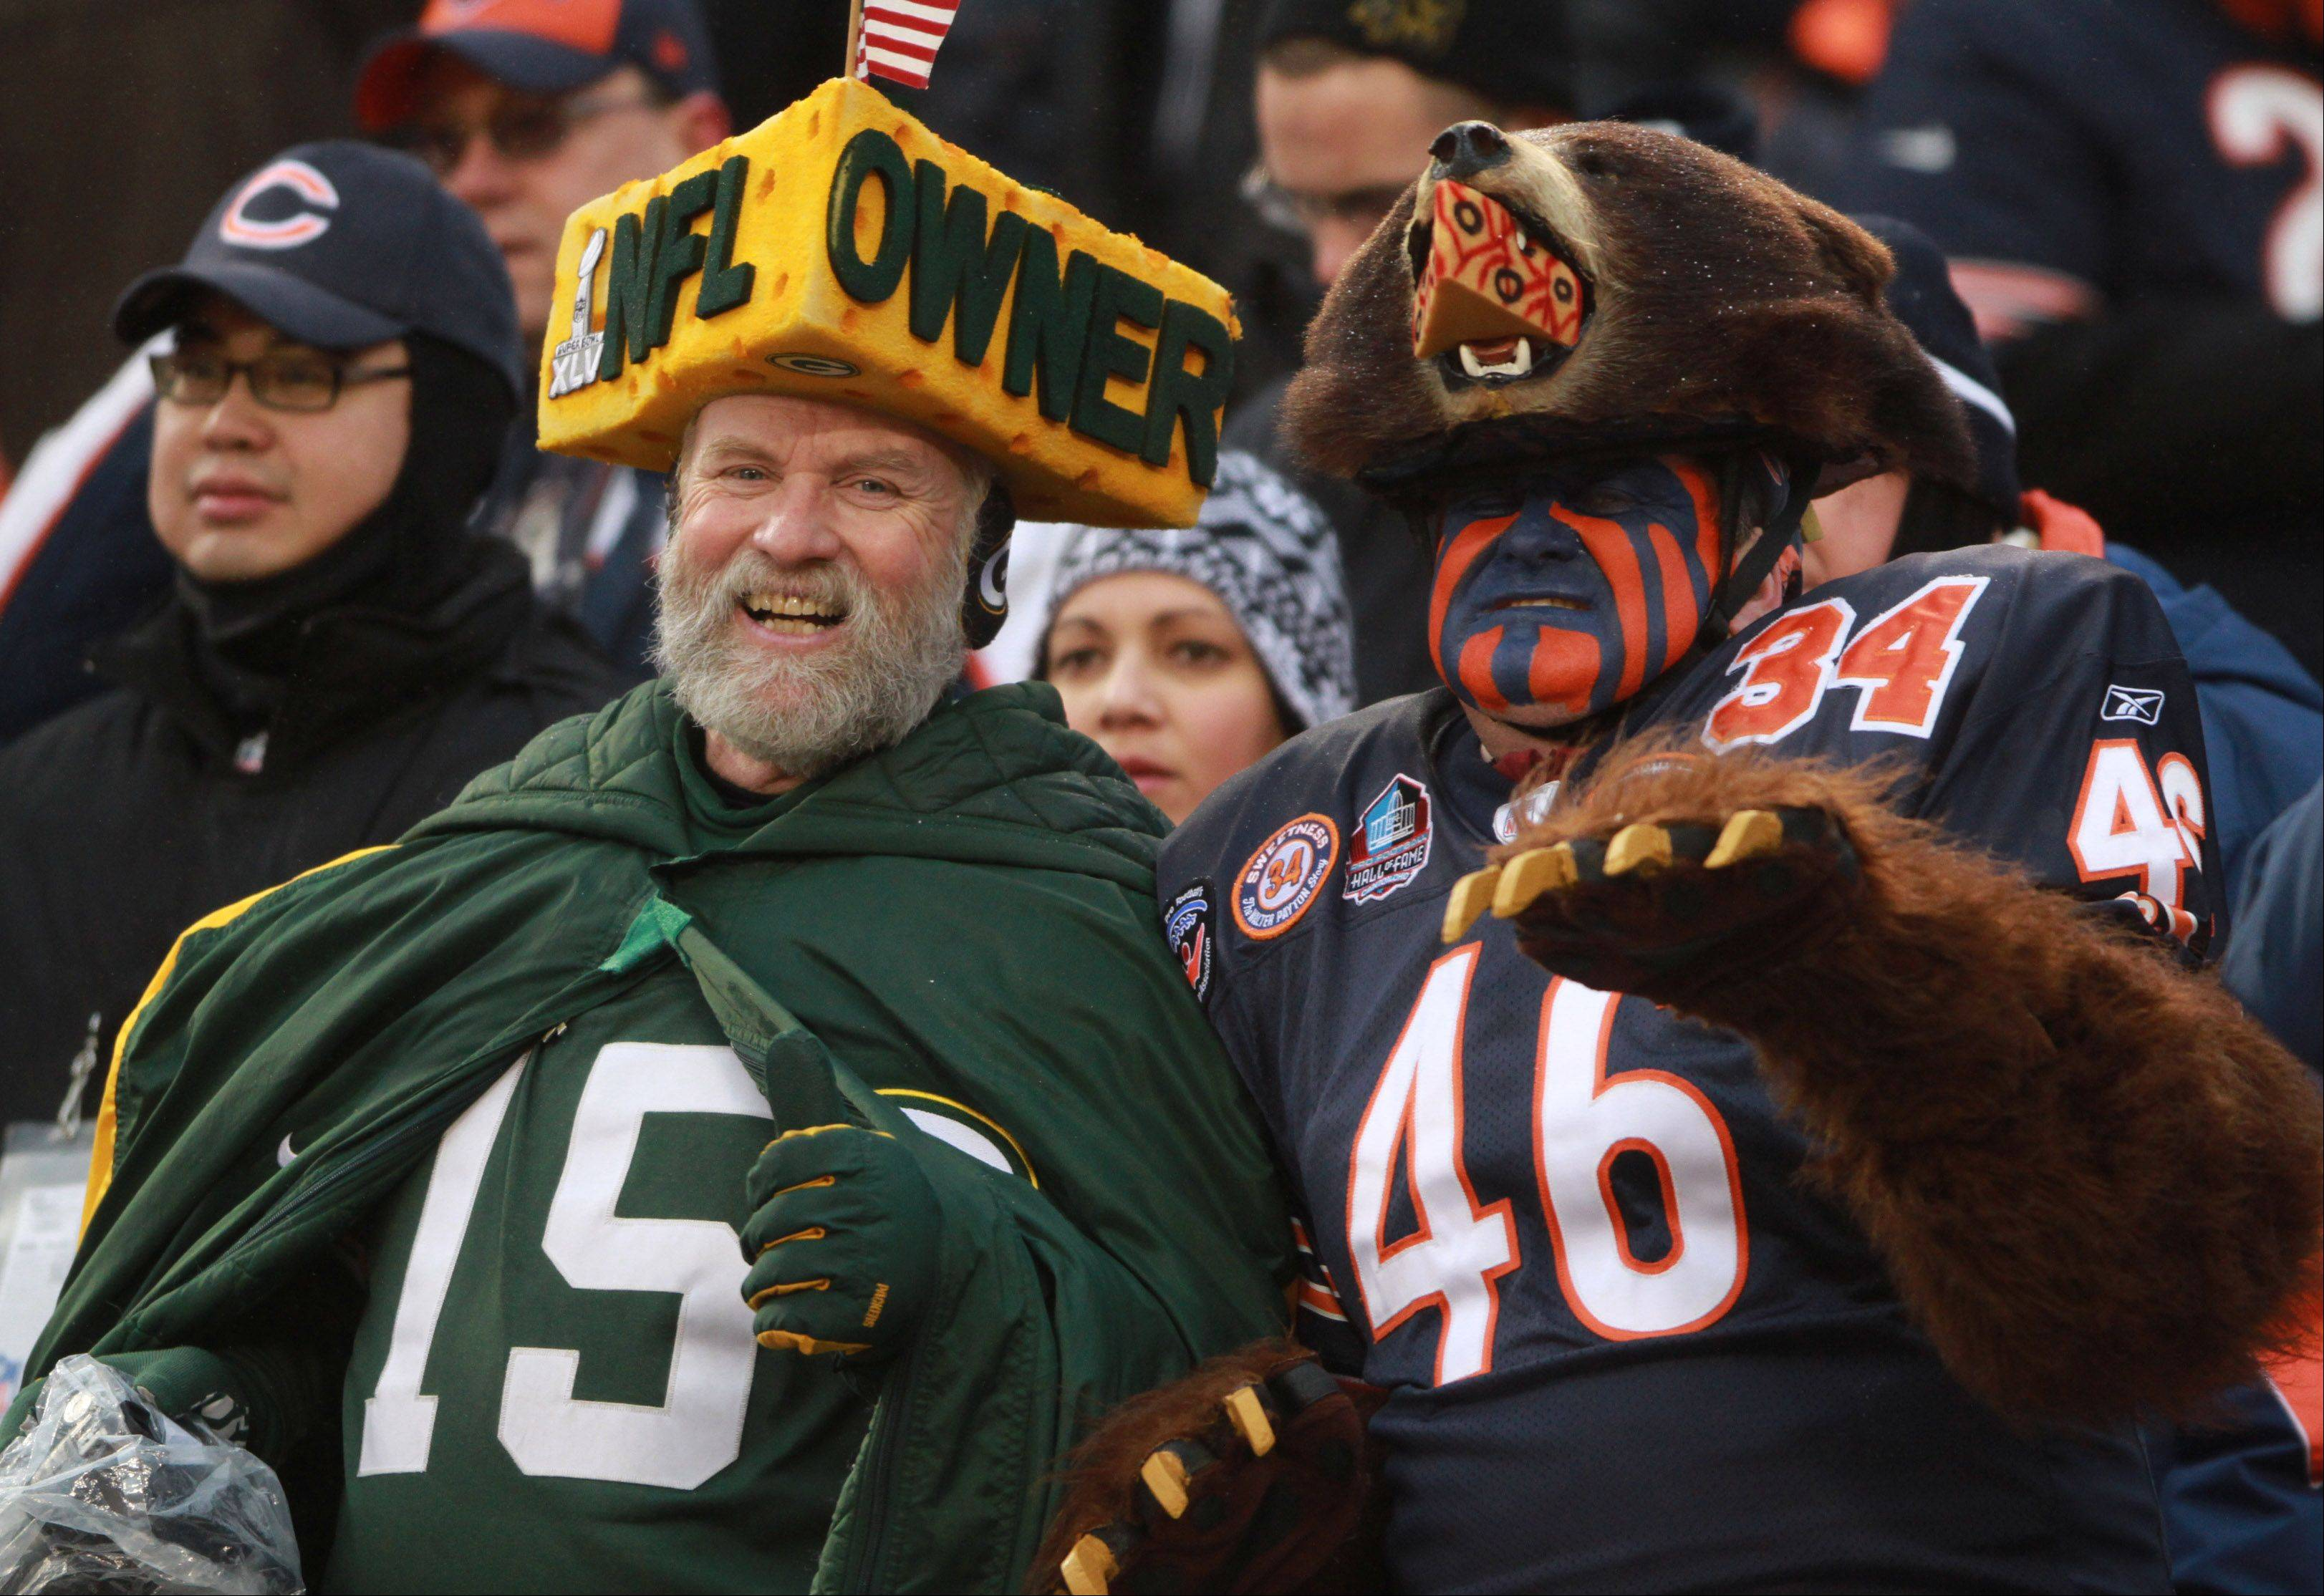 A Green Bay Packers fan next to a Bears fan is all smiles at the end of the game on Sunday at Soldier Field in Chicago.